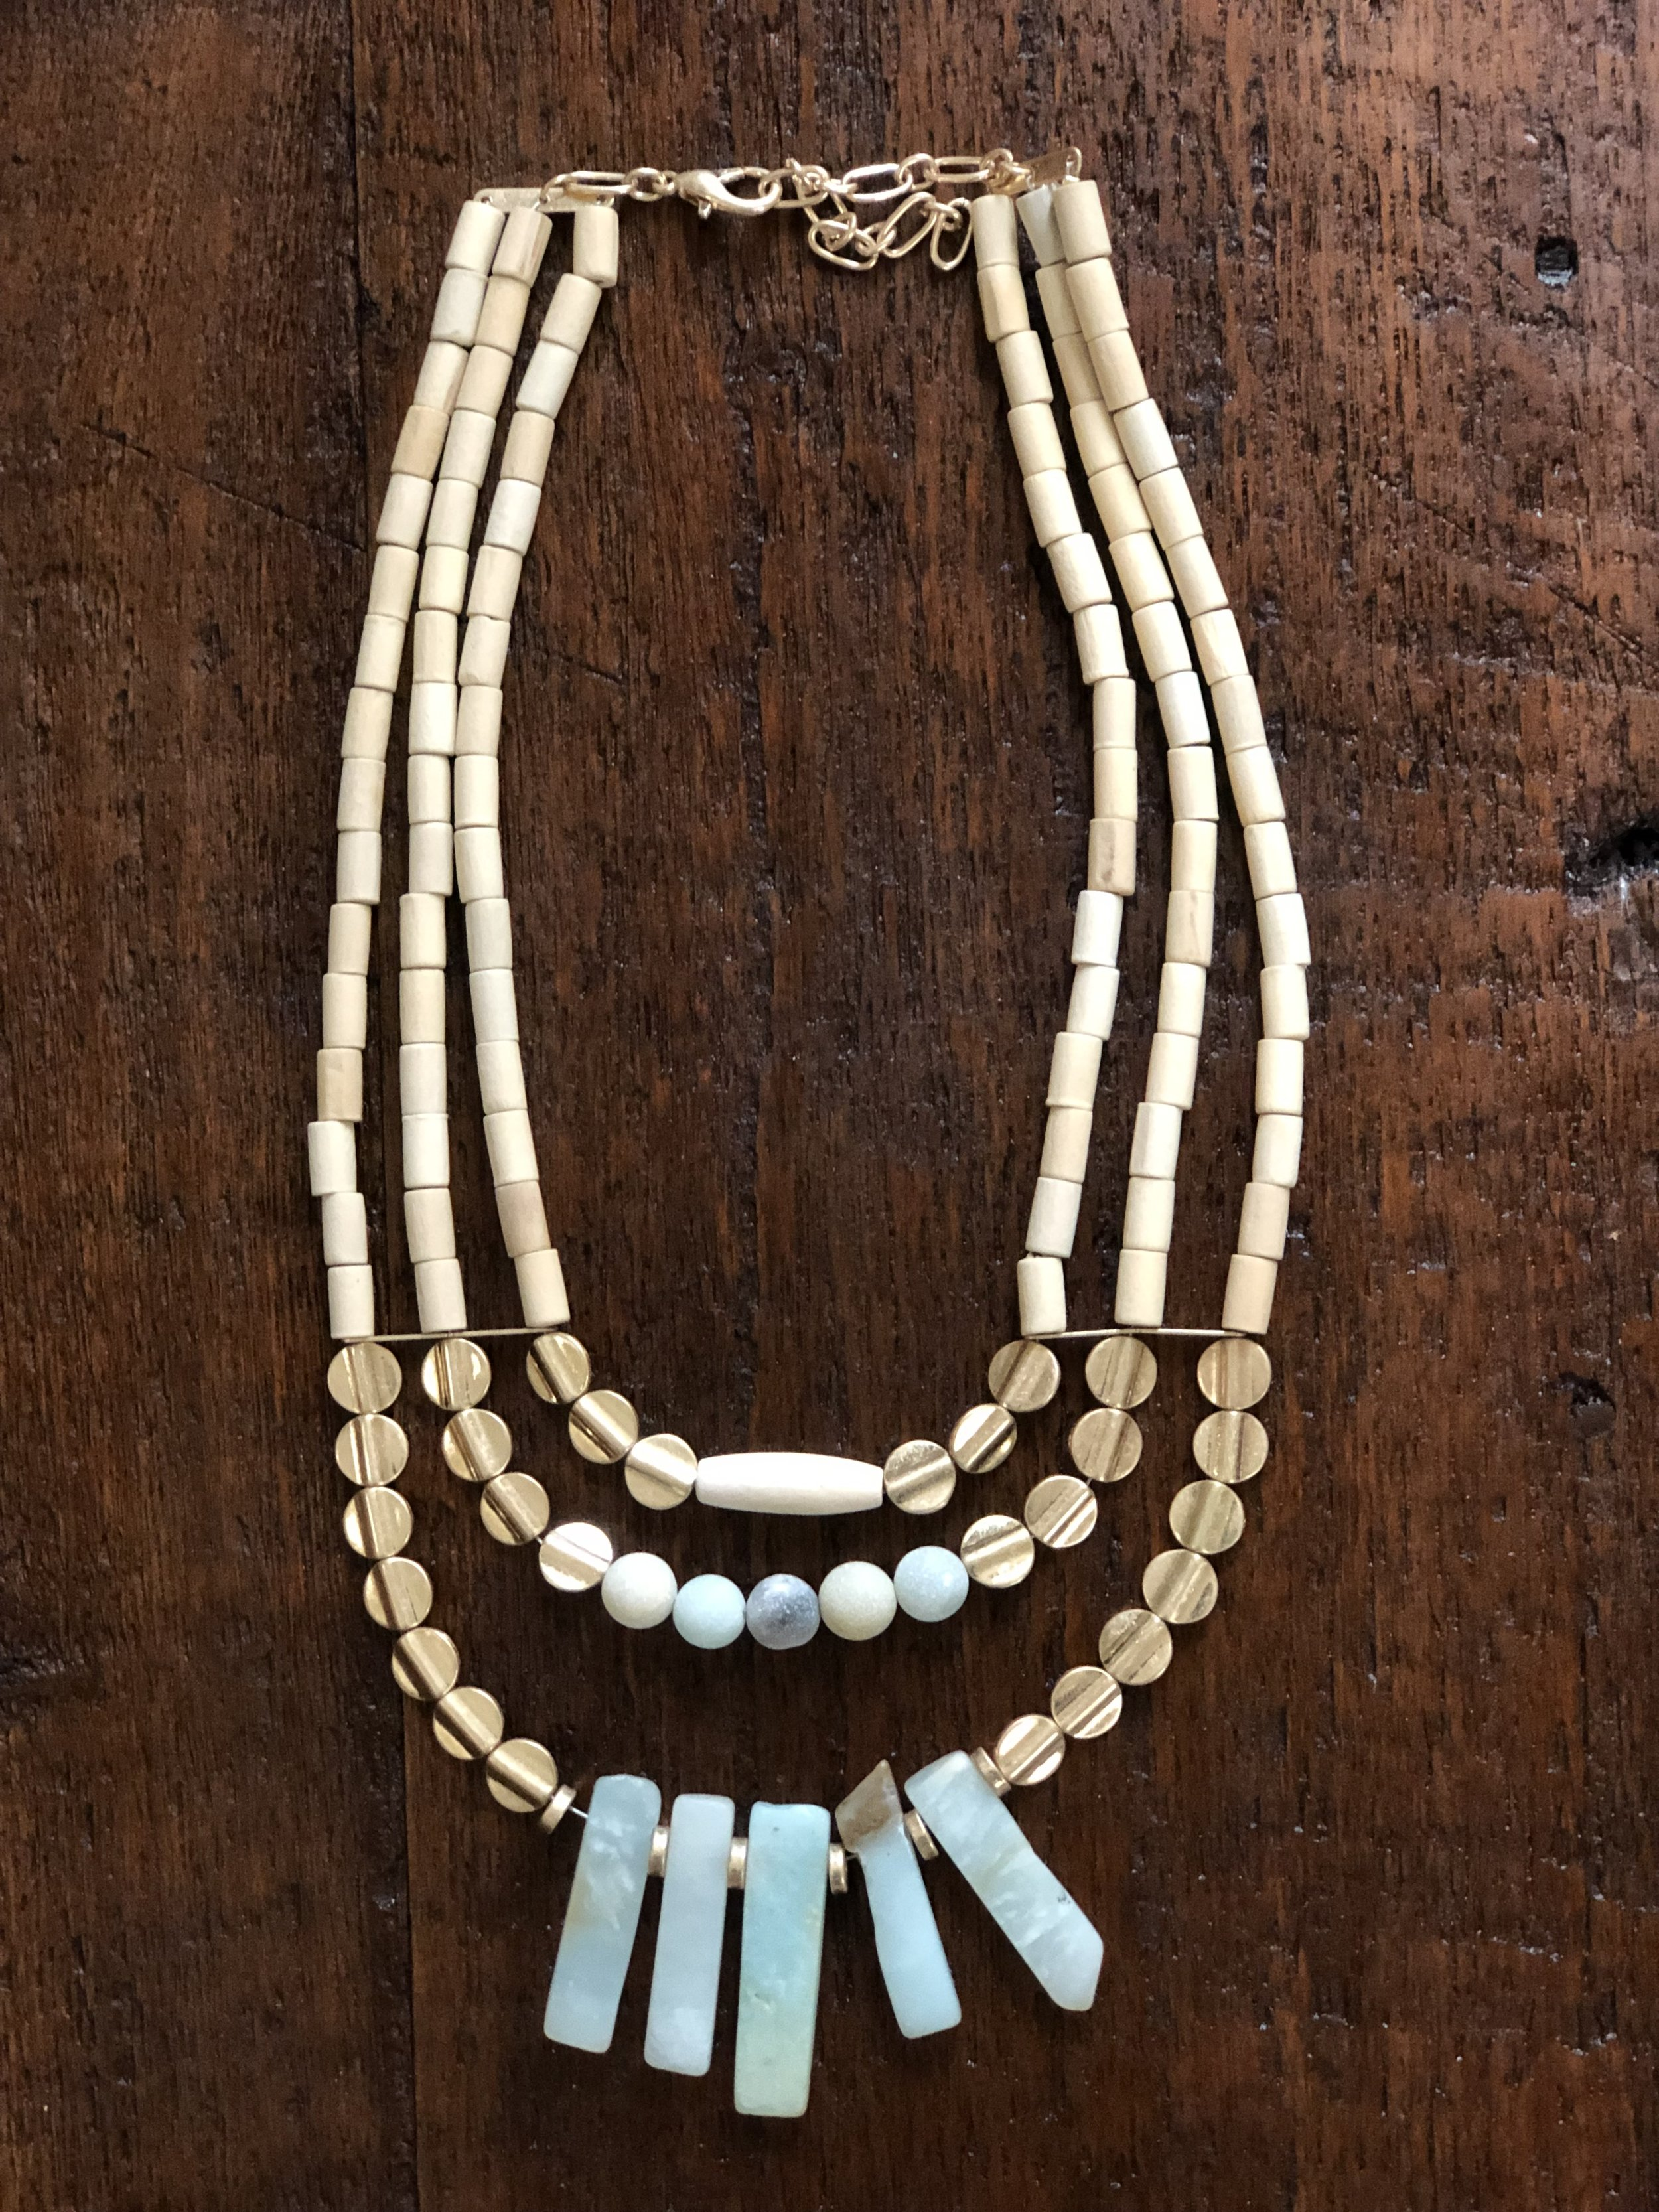 Beaded wood and stone necklace -$27.99